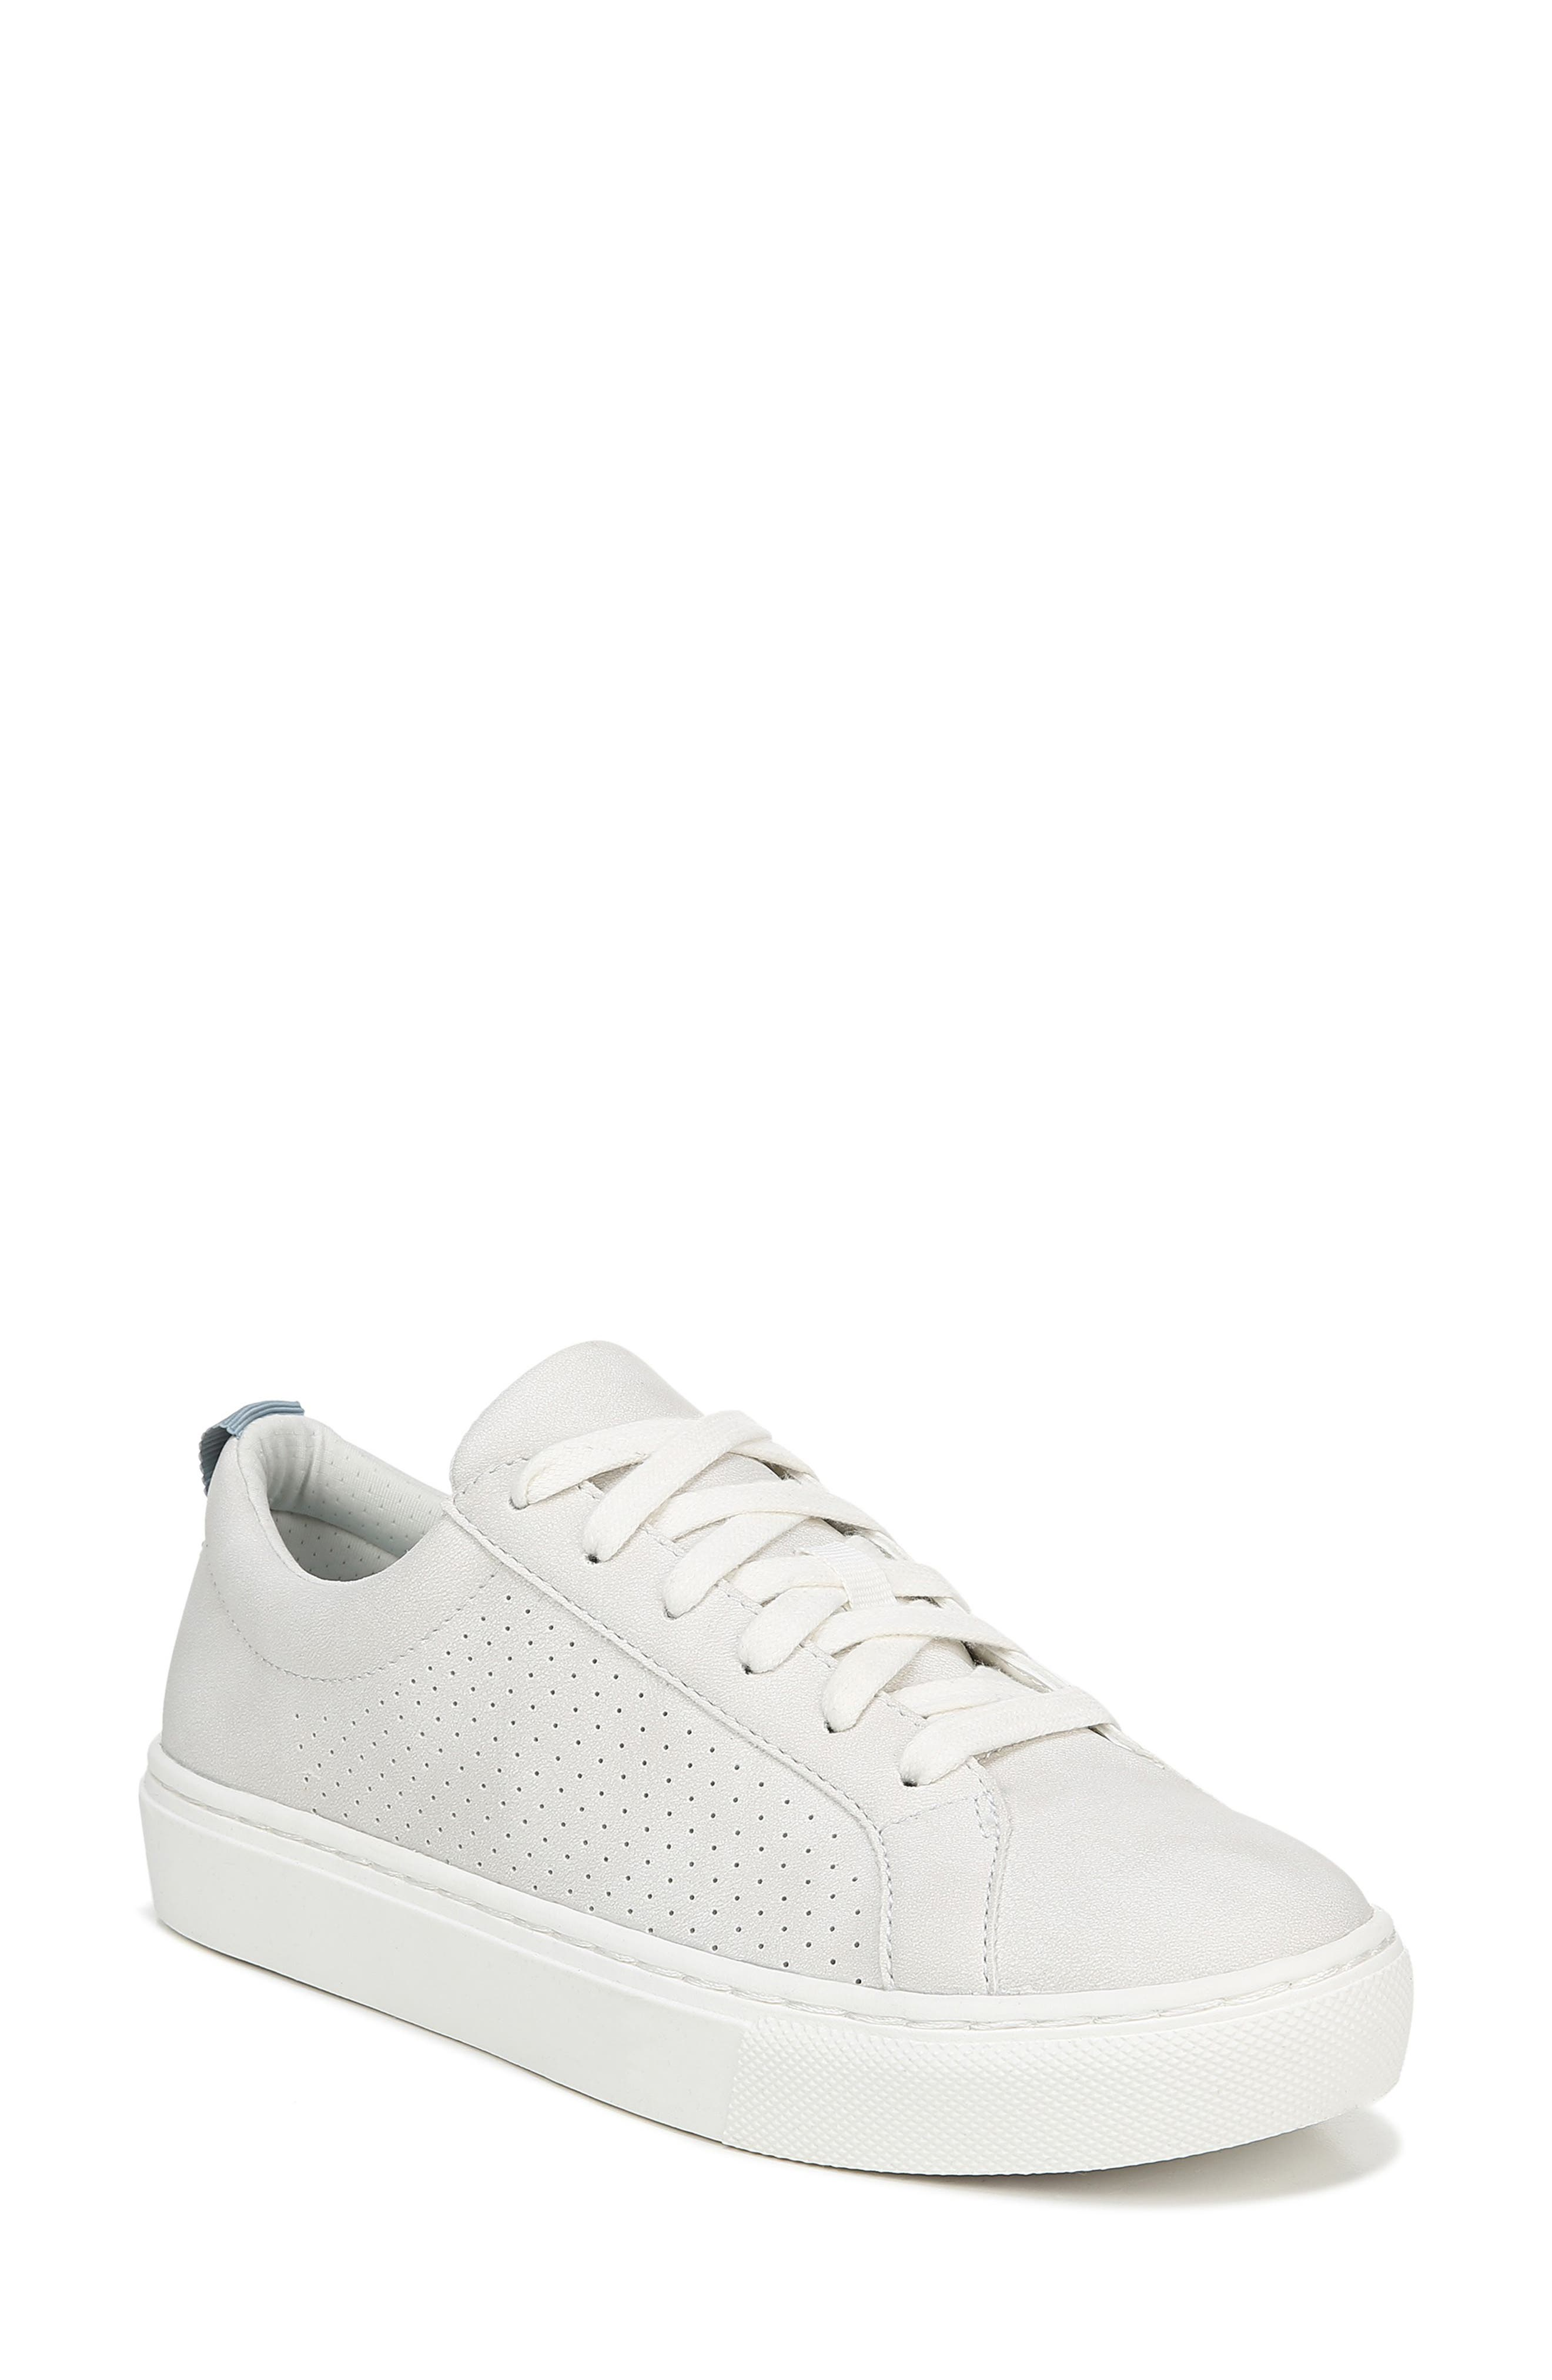 No Bad Vibes Sneaker,                             Main thumbnail 1, color,                             WHITE FAUX LEATHER